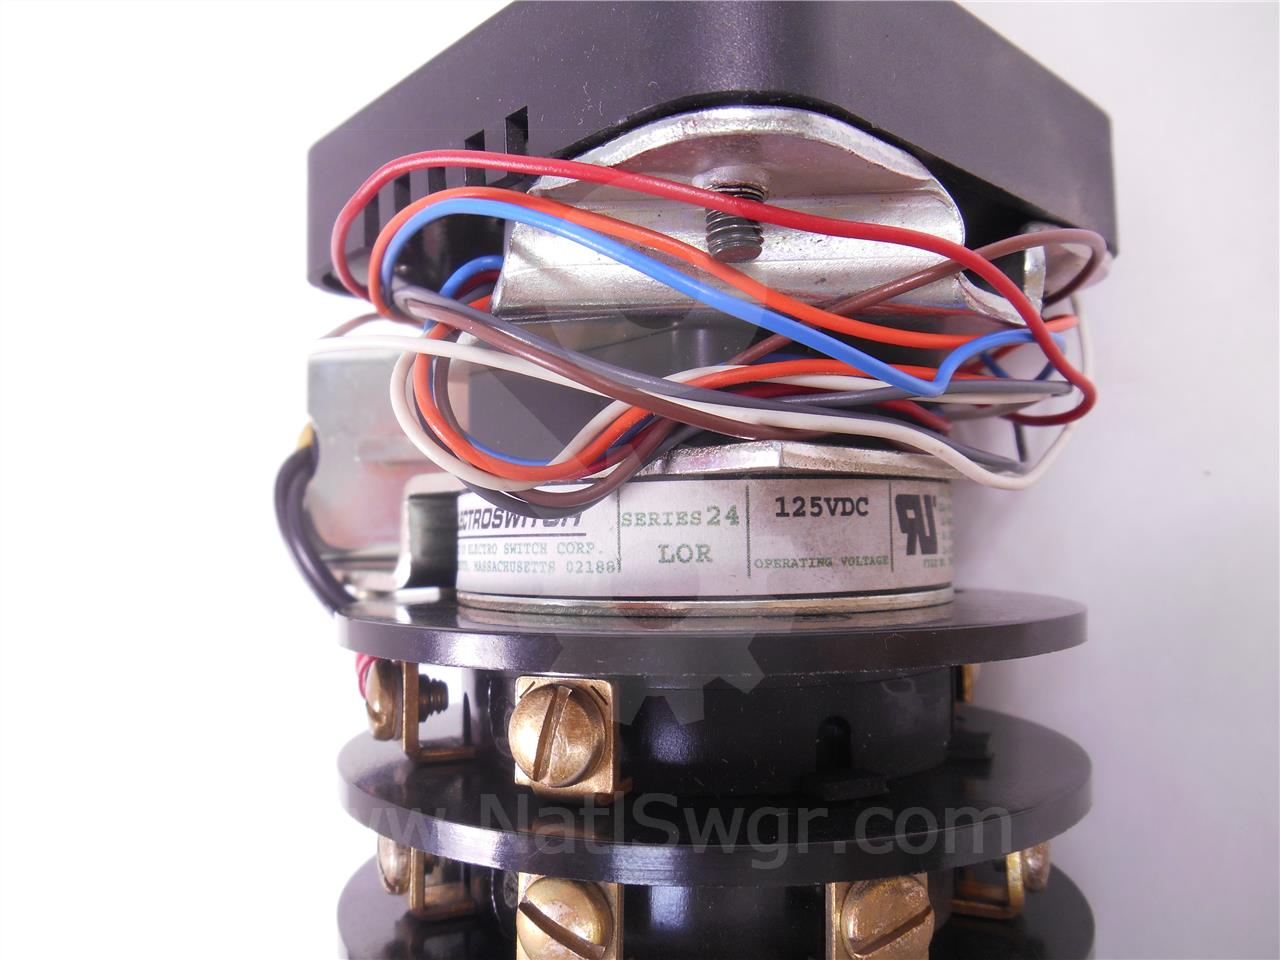 Electroswitch Electroswitch 125vdc Lock Out Relay